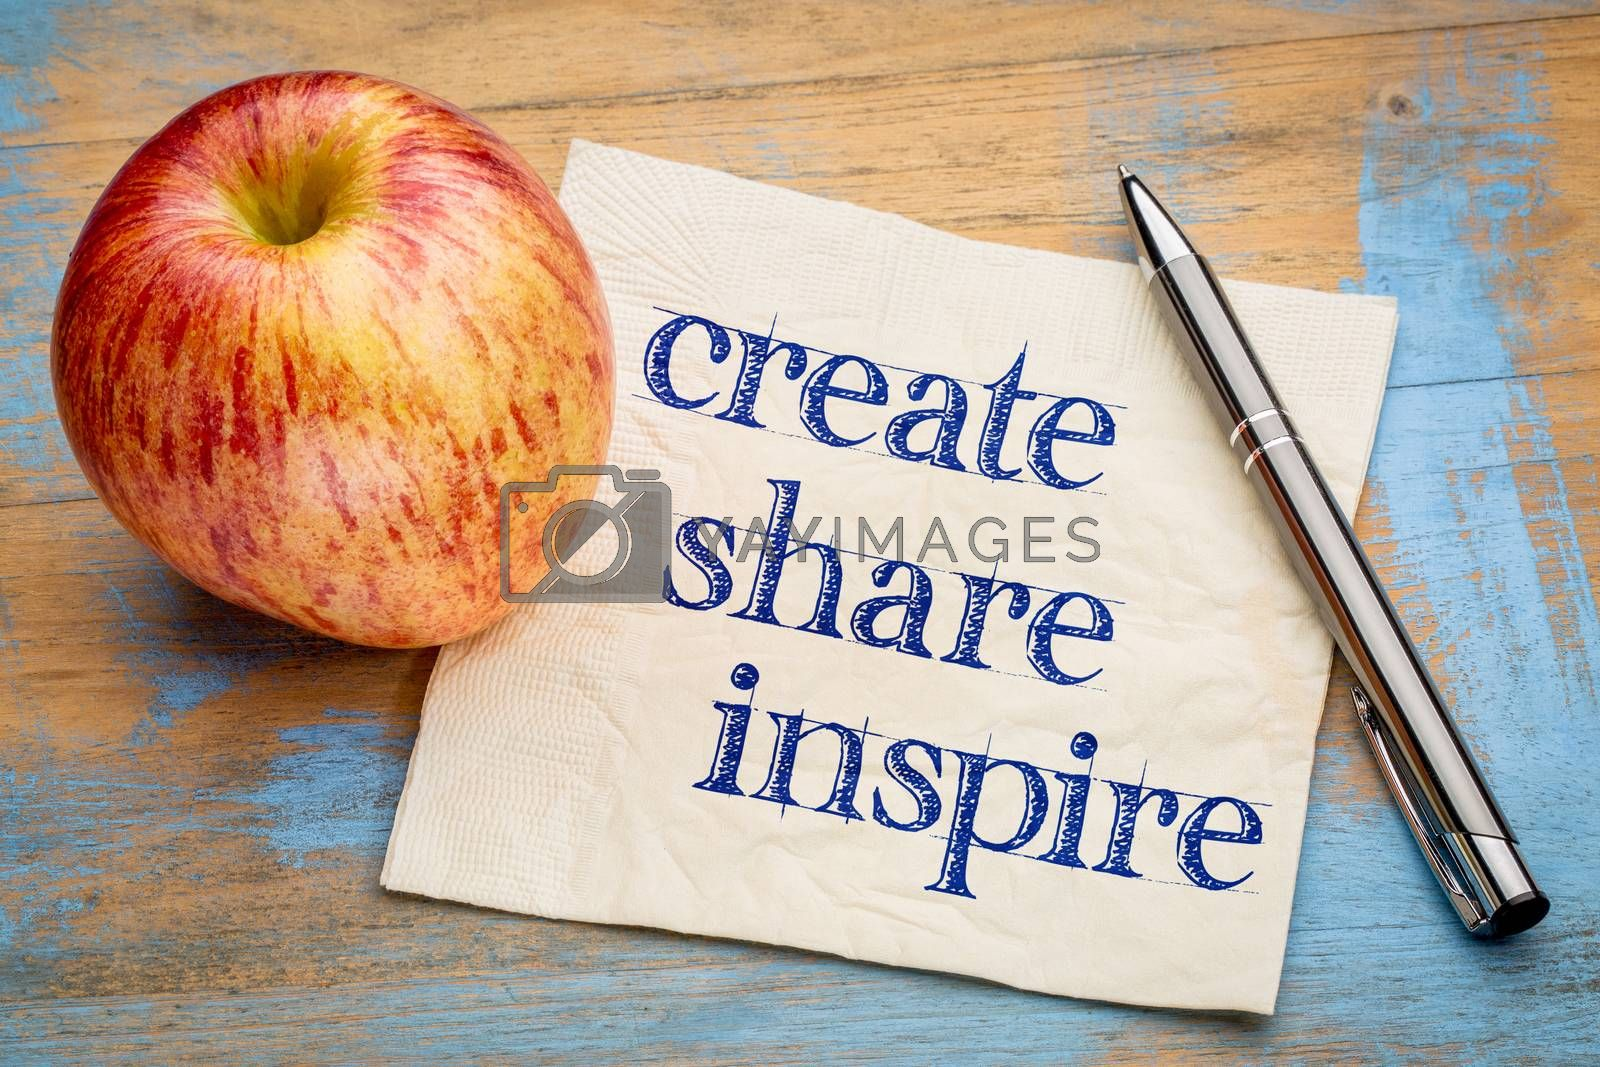 create, share inspire motivational words - handwriting on a napkin with a fresh apple